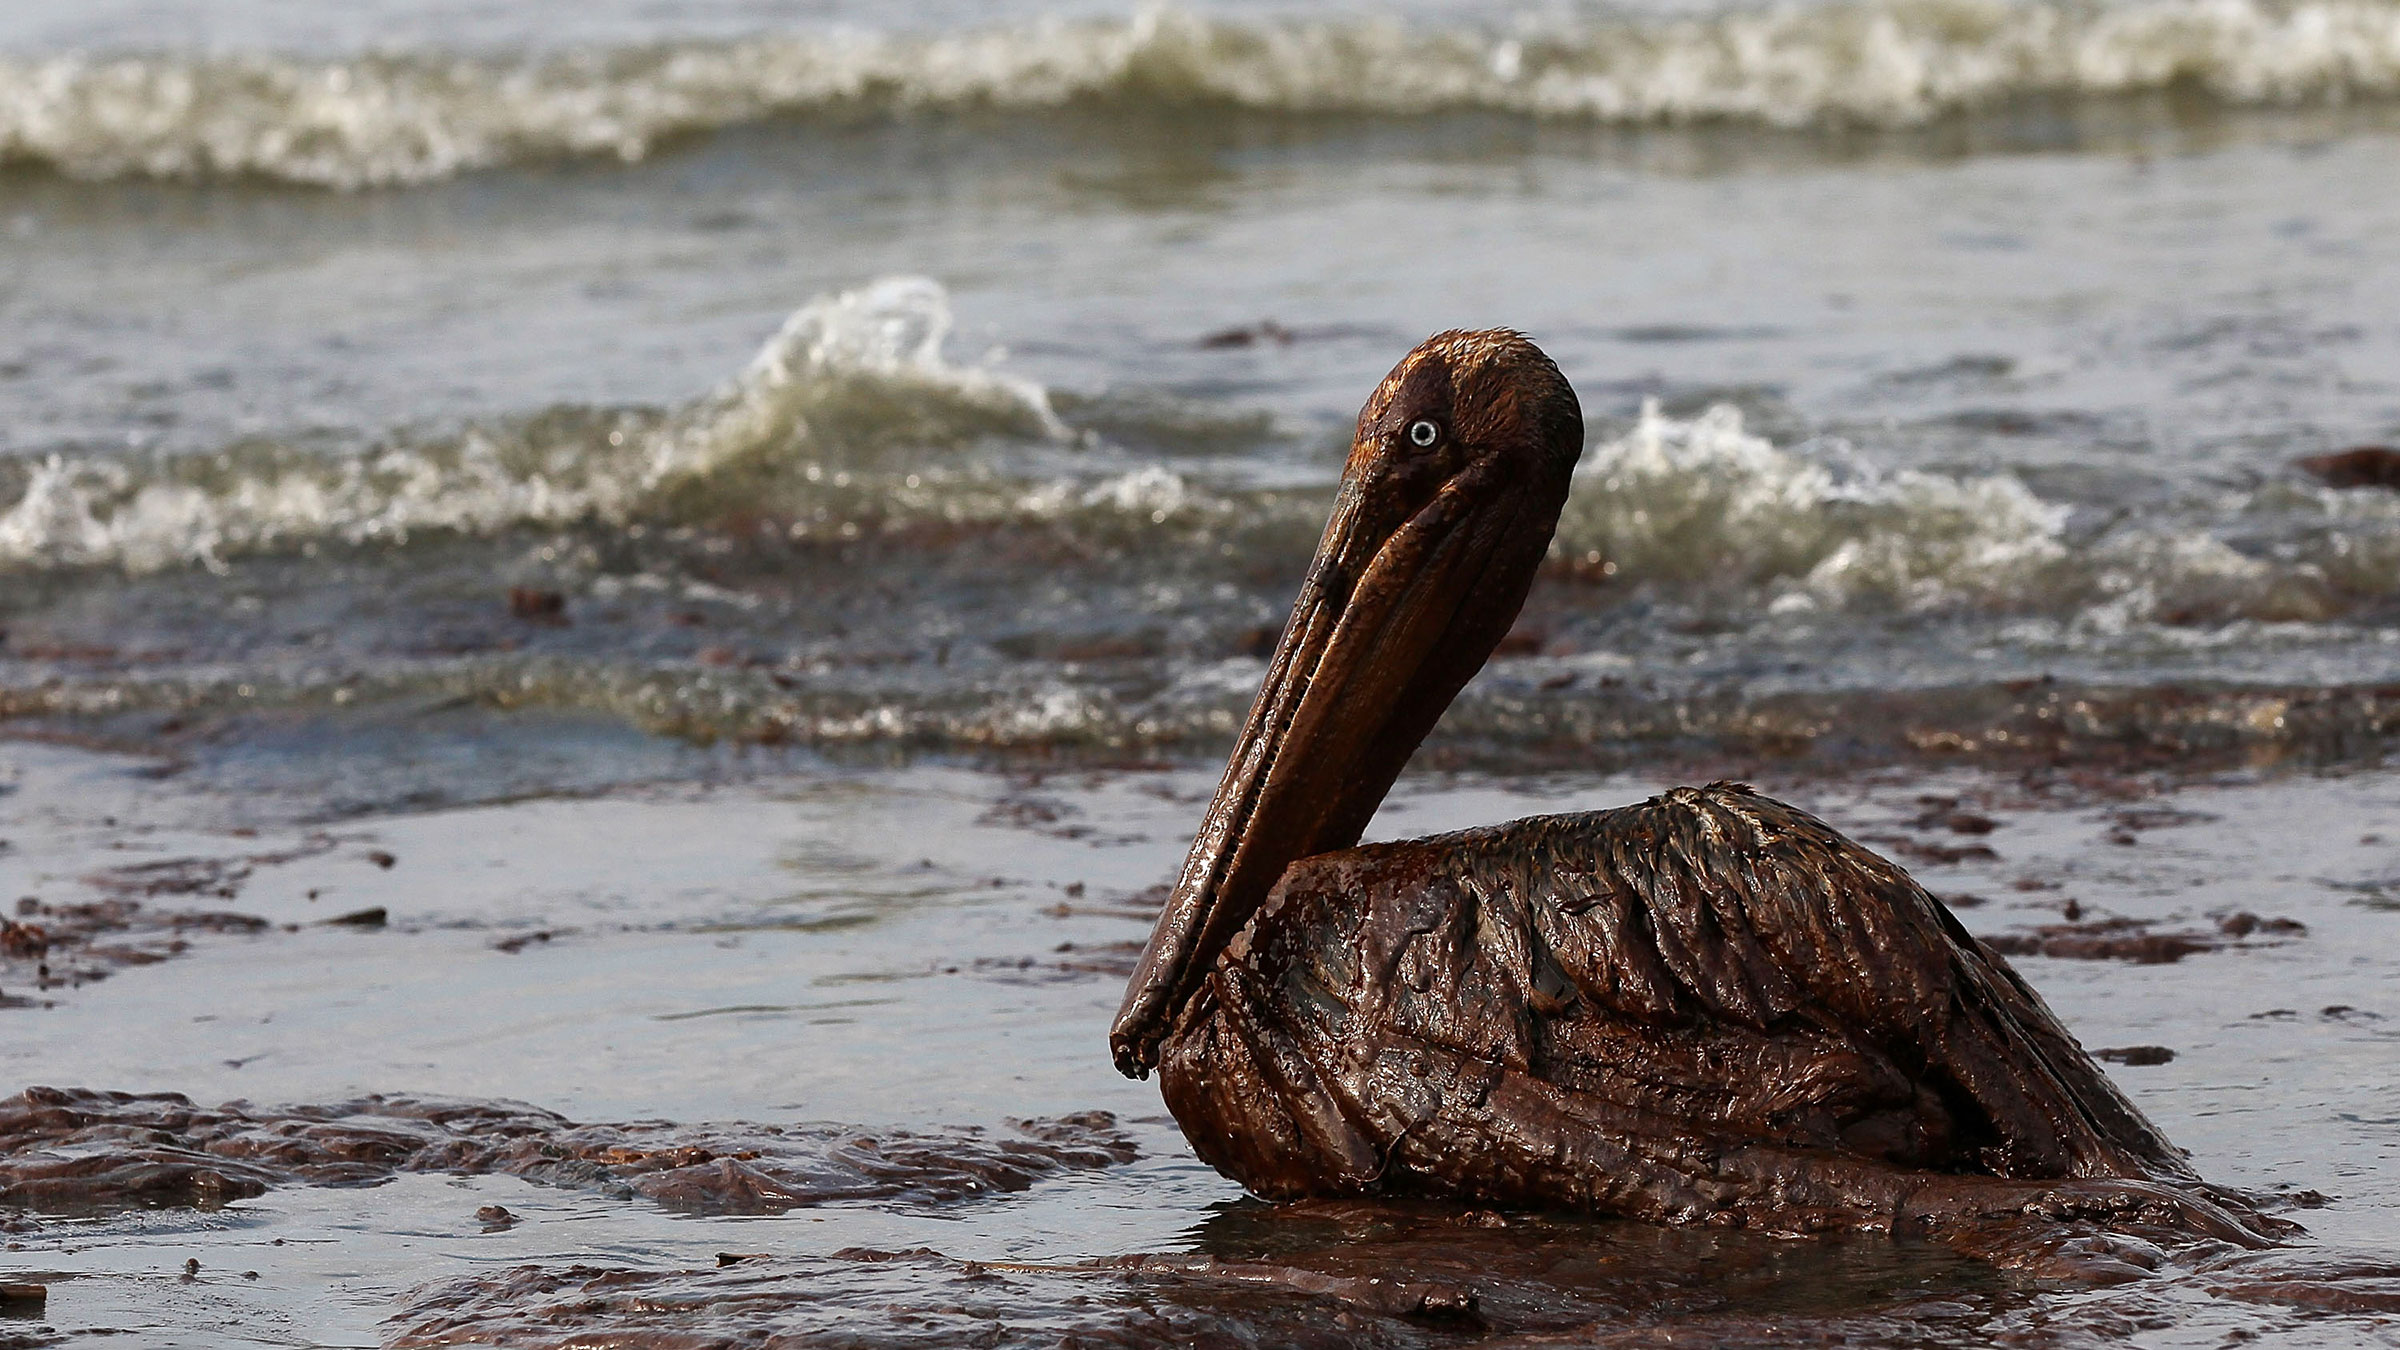 BP pleaded guilty to a criminal misdemeanor count under the Migratory Bird Treaty Act